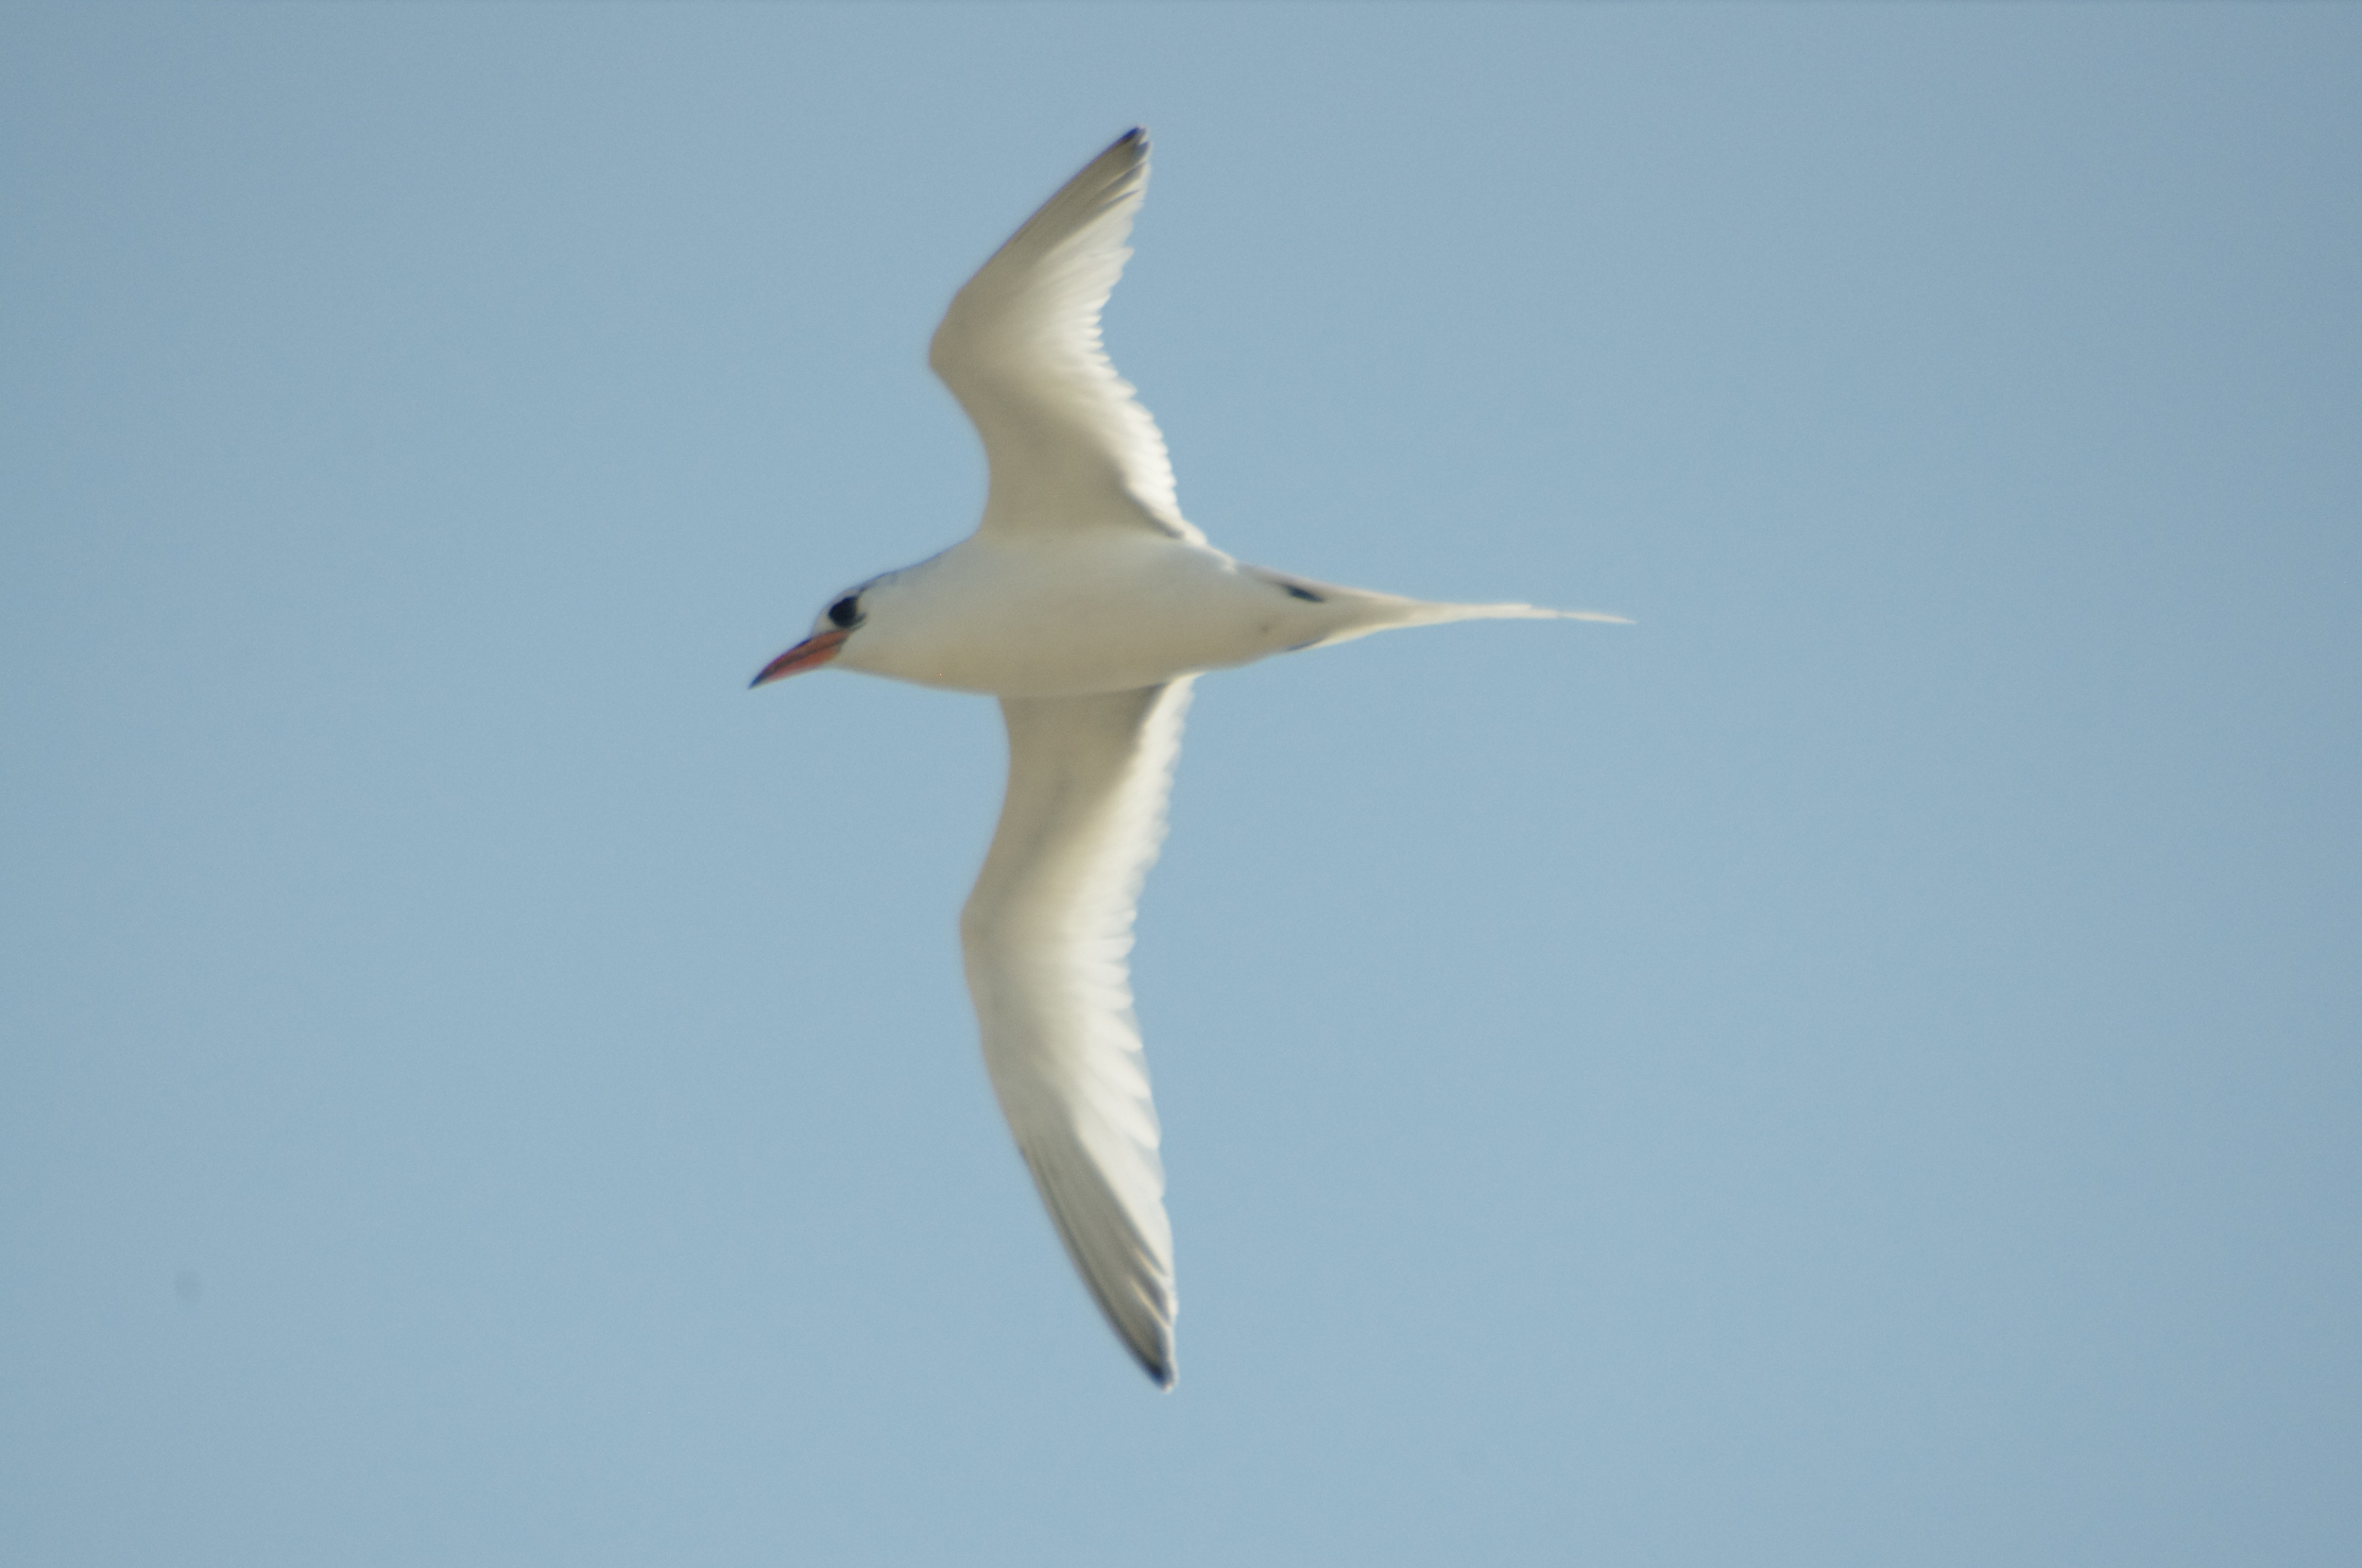 There is currently a submission being reviewed by BirdLife Australia's Rarities Committee to verify that this is a genuine Red-billed Tropicbird. If accepted, this will become only the second record of this species in Australia. Photo: Rowan Mott.